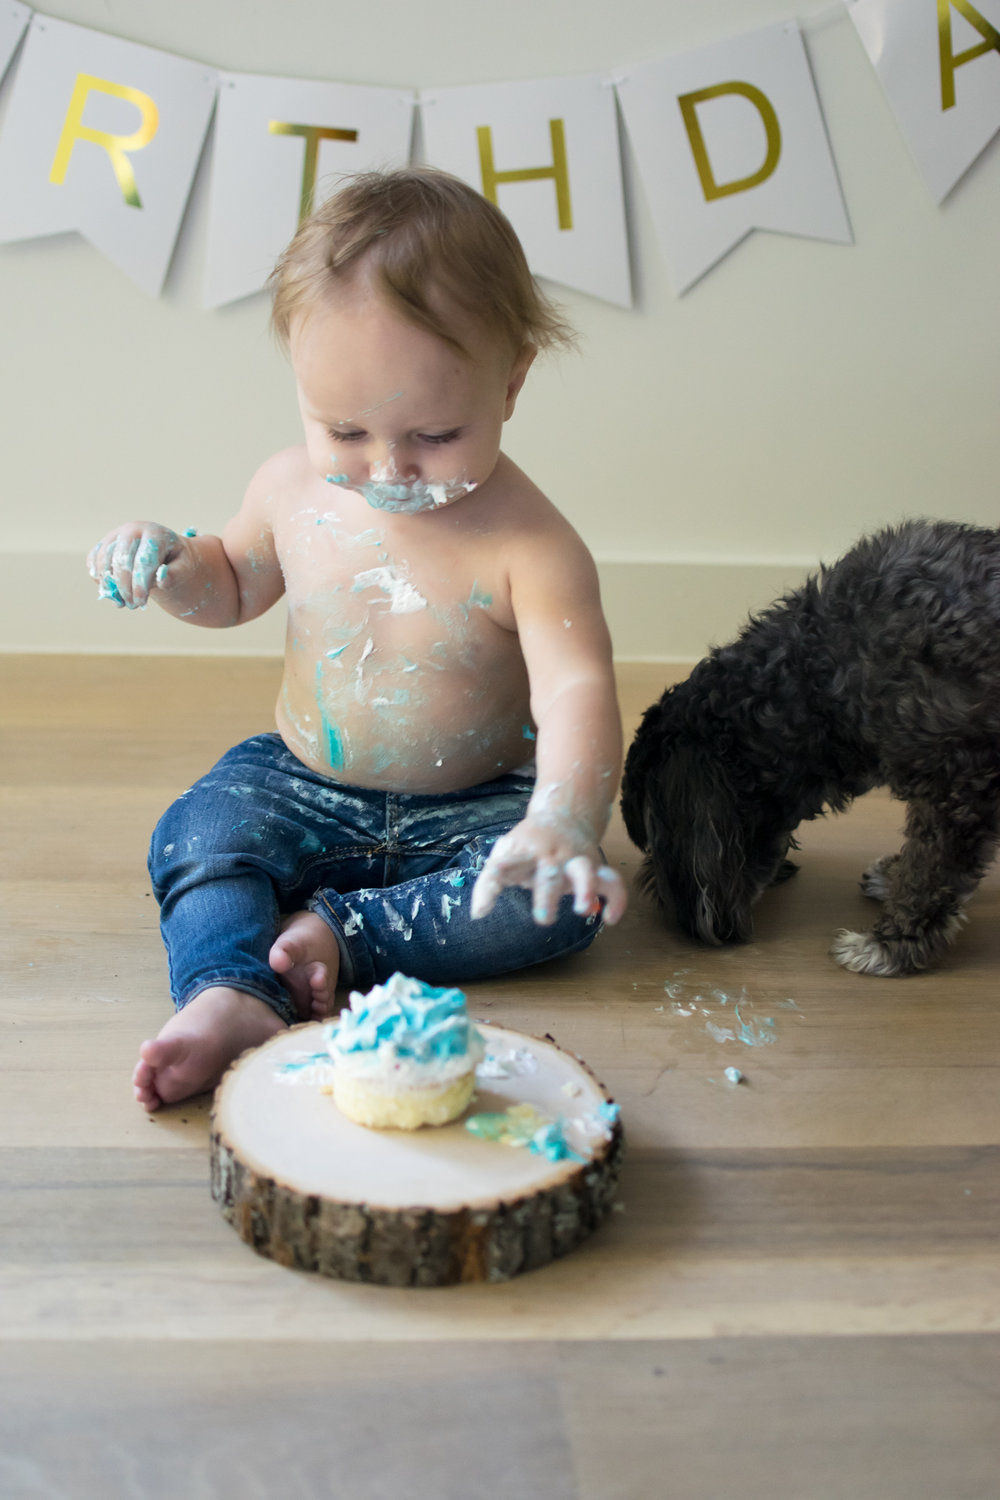 this is an image of a toddler child boy, eating his birthday cake, with icing on his face, and a dog eating the birthday cake off of the floor